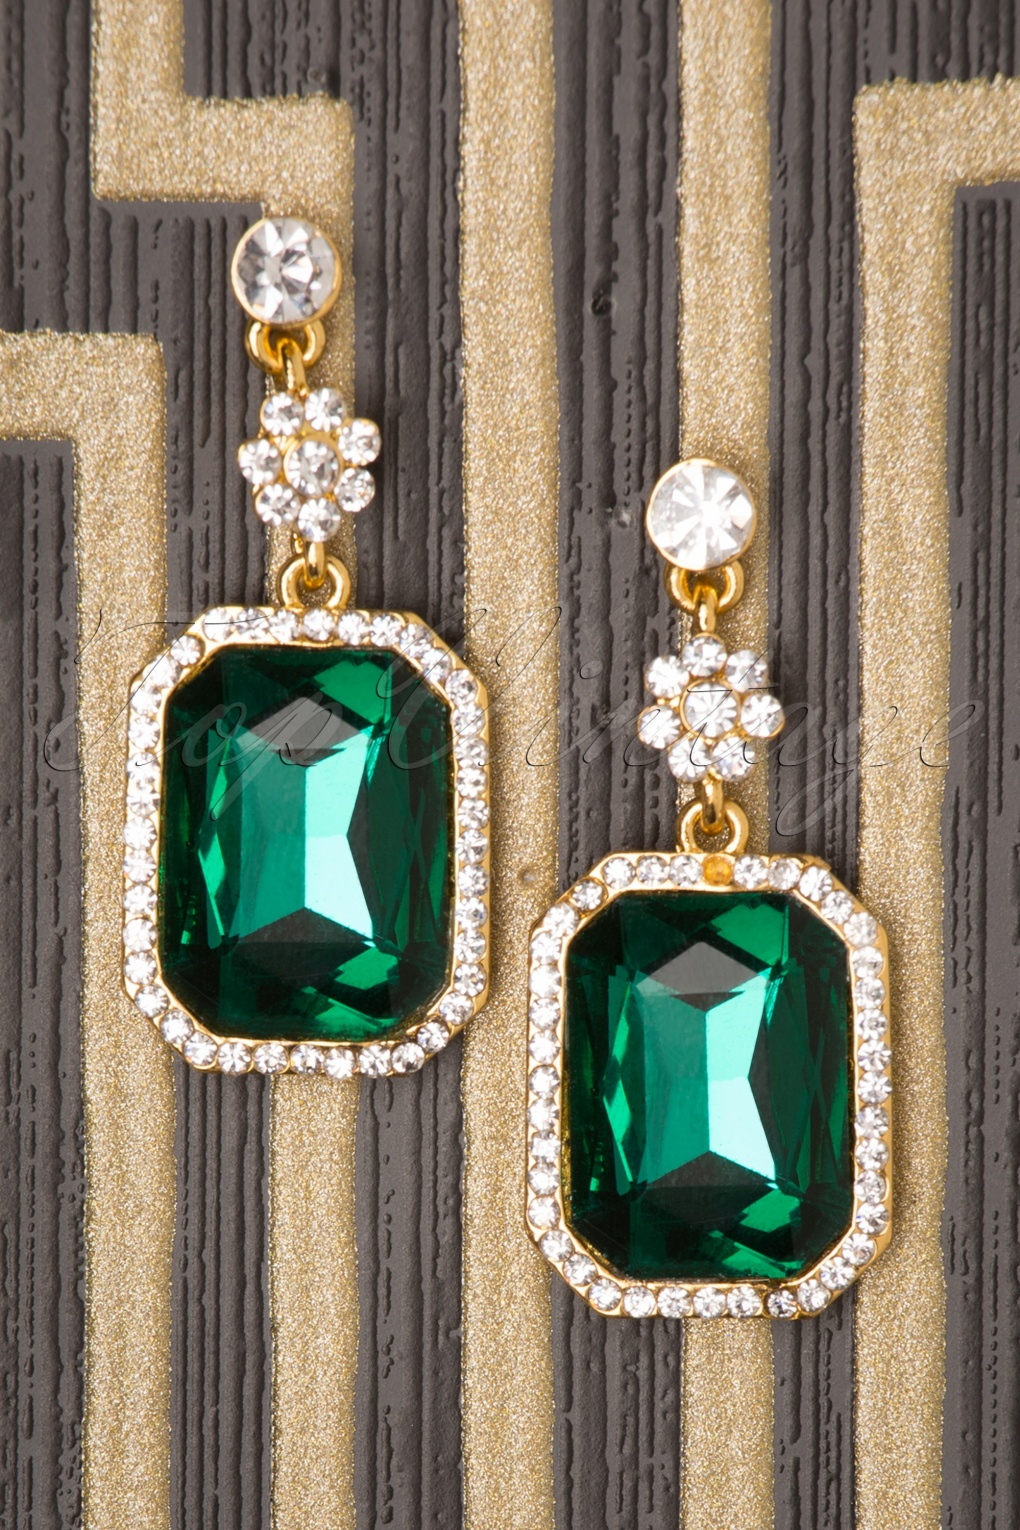 50s Jewelry: Earrings, Necklace, Brooch, Bracelet 50s Rectangular Sparkly Drop Earrings in Gold and Green £11.79 AT vintagedancer.com